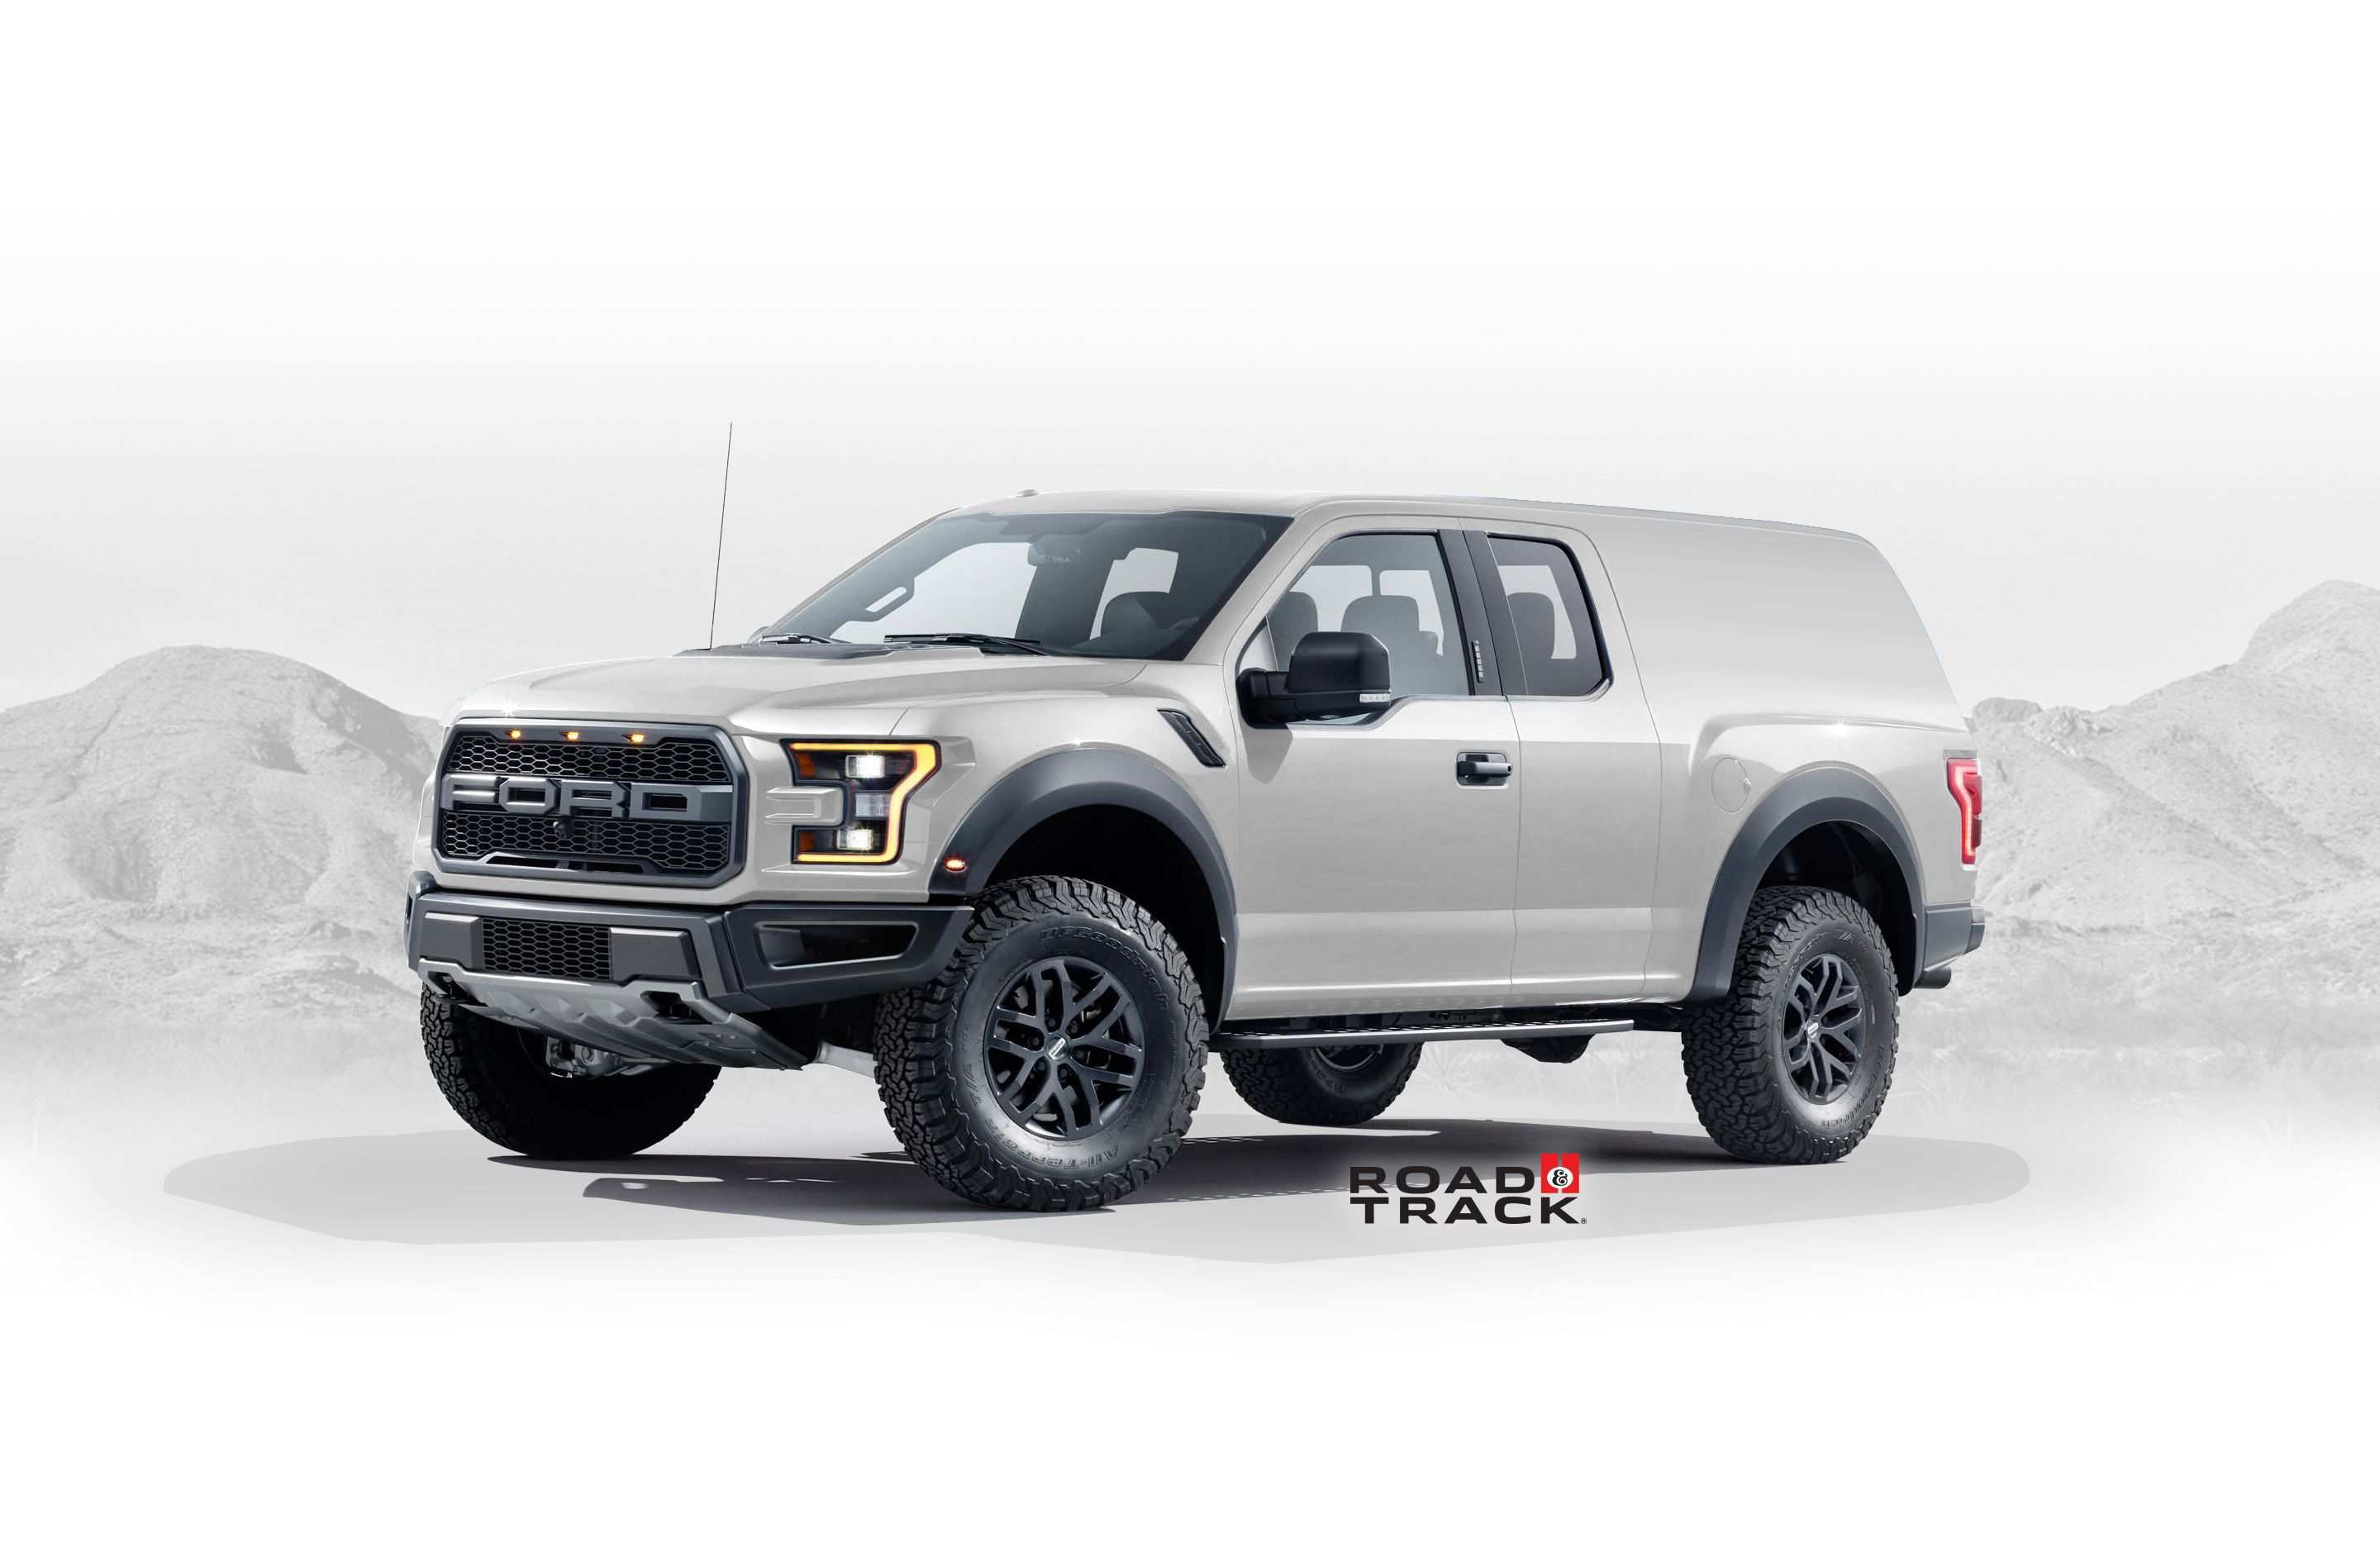 47 The Best 2020 Ford Bronco Design History